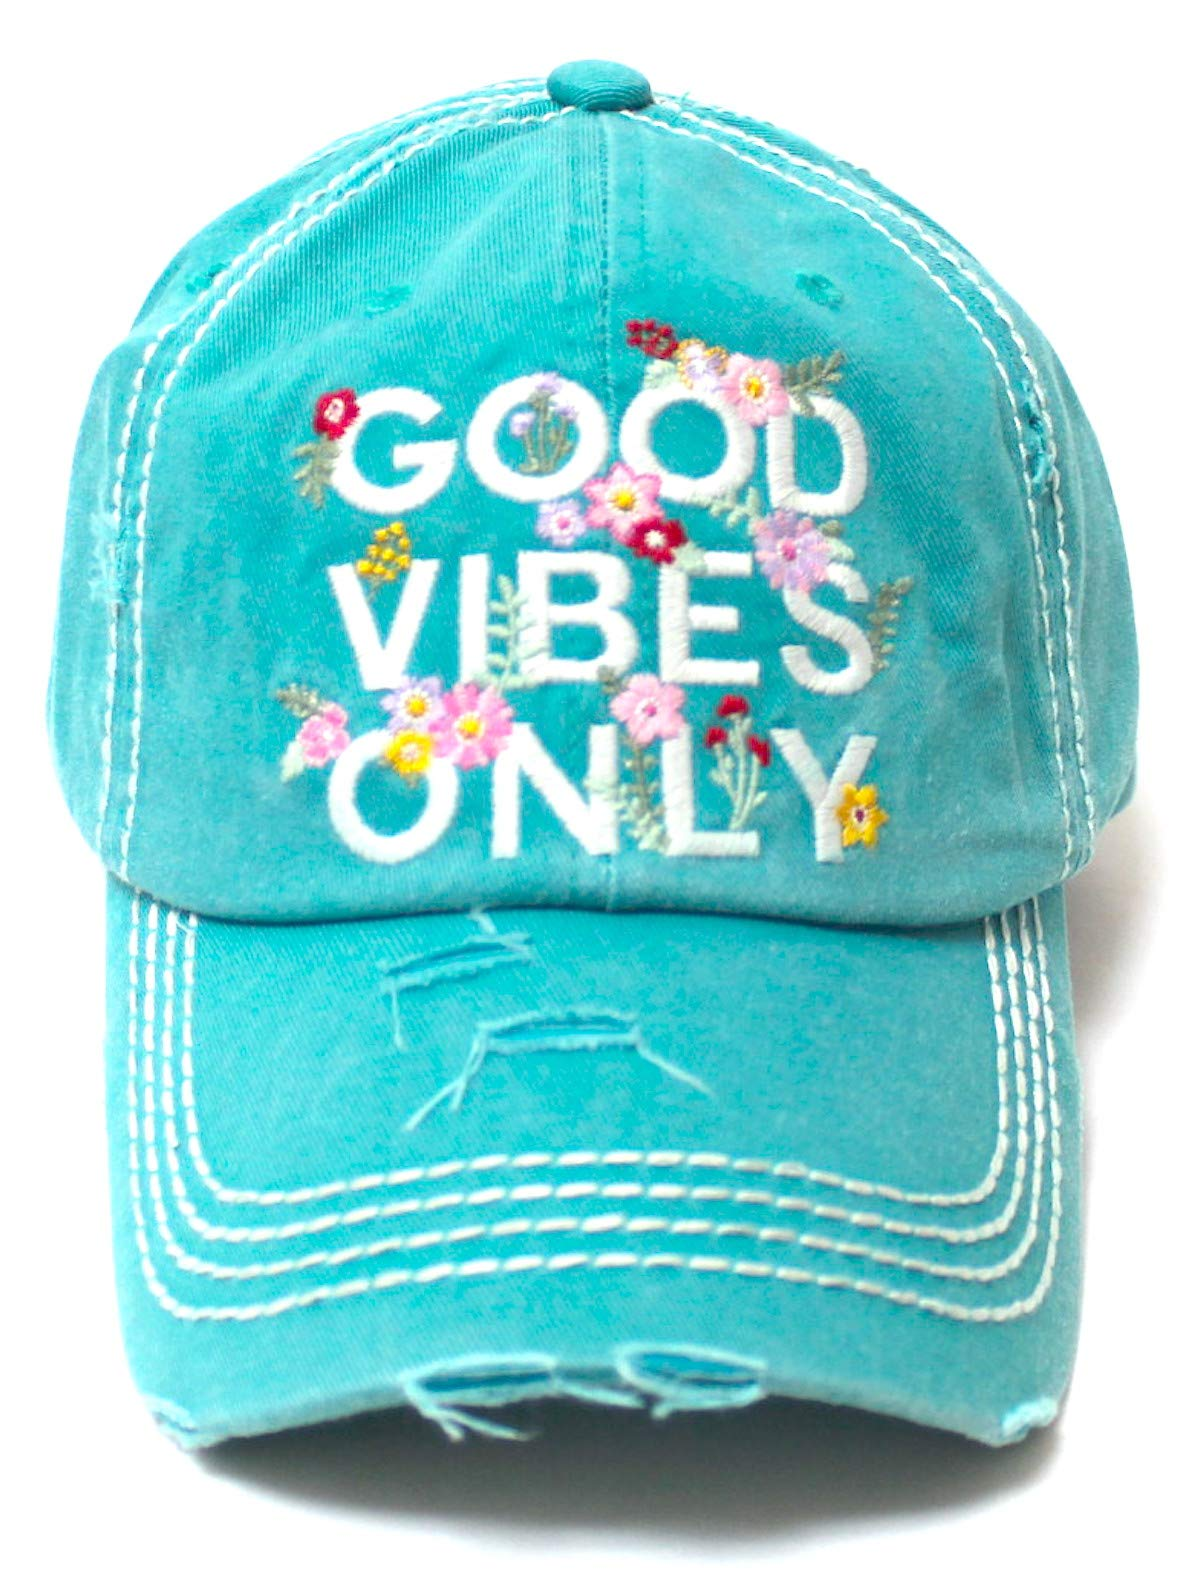 Women's Summer Ballcap Good Vibes Only Floral Monogram Embroidery Beach Hat, Ocean Blue - Caps 'N Vintage